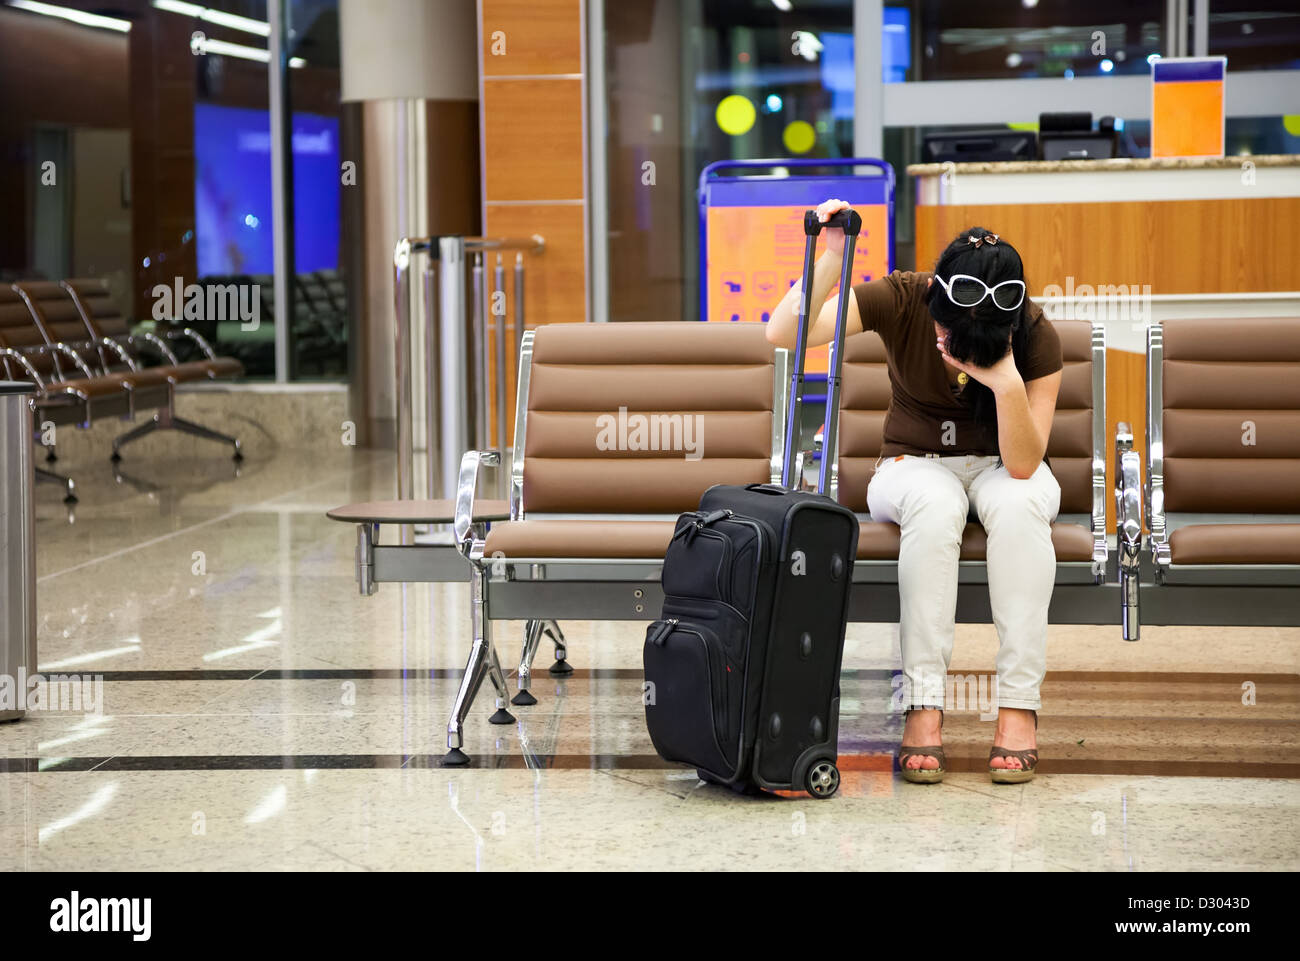 woman was late for a plane at the airport - Stock Image